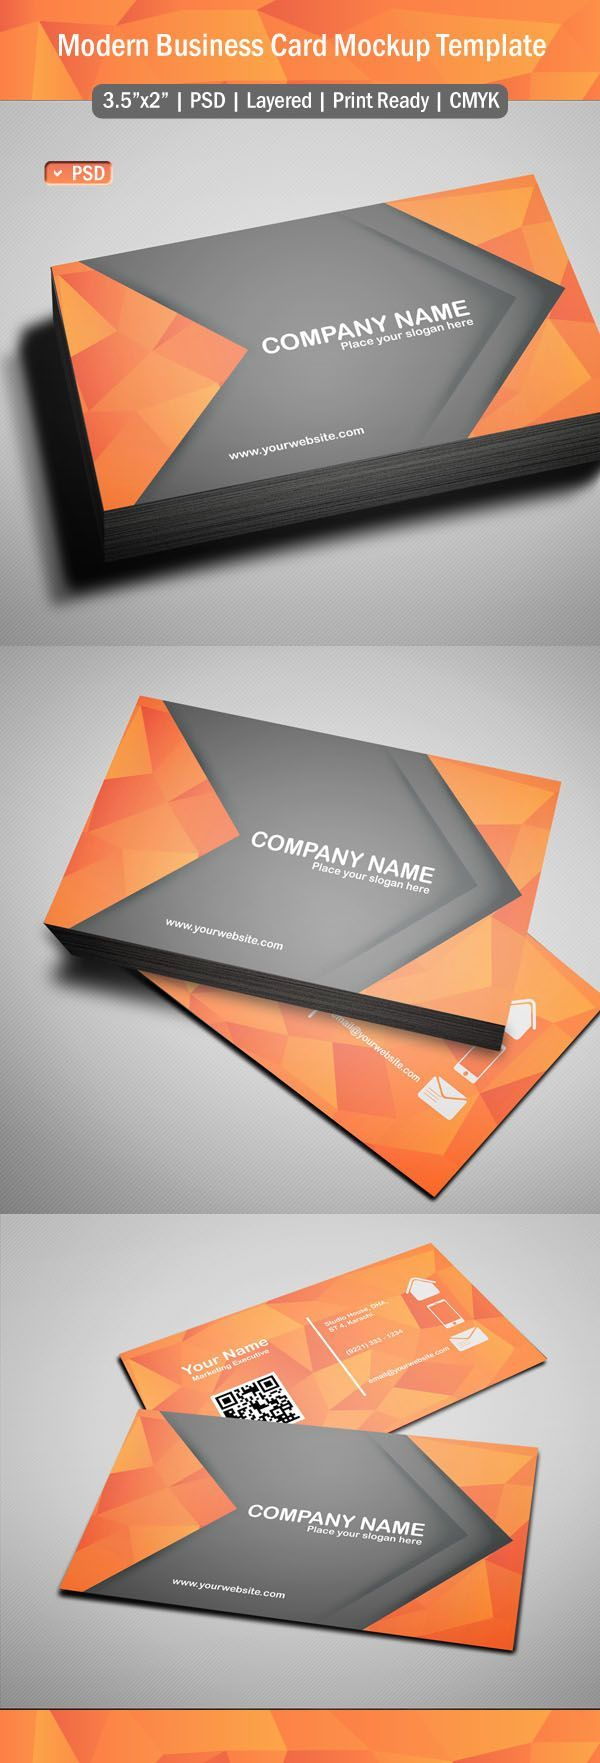 Best 25 modern business cards ideas on pinterest free business free modern business card template psd magicingreecefo Choice Image